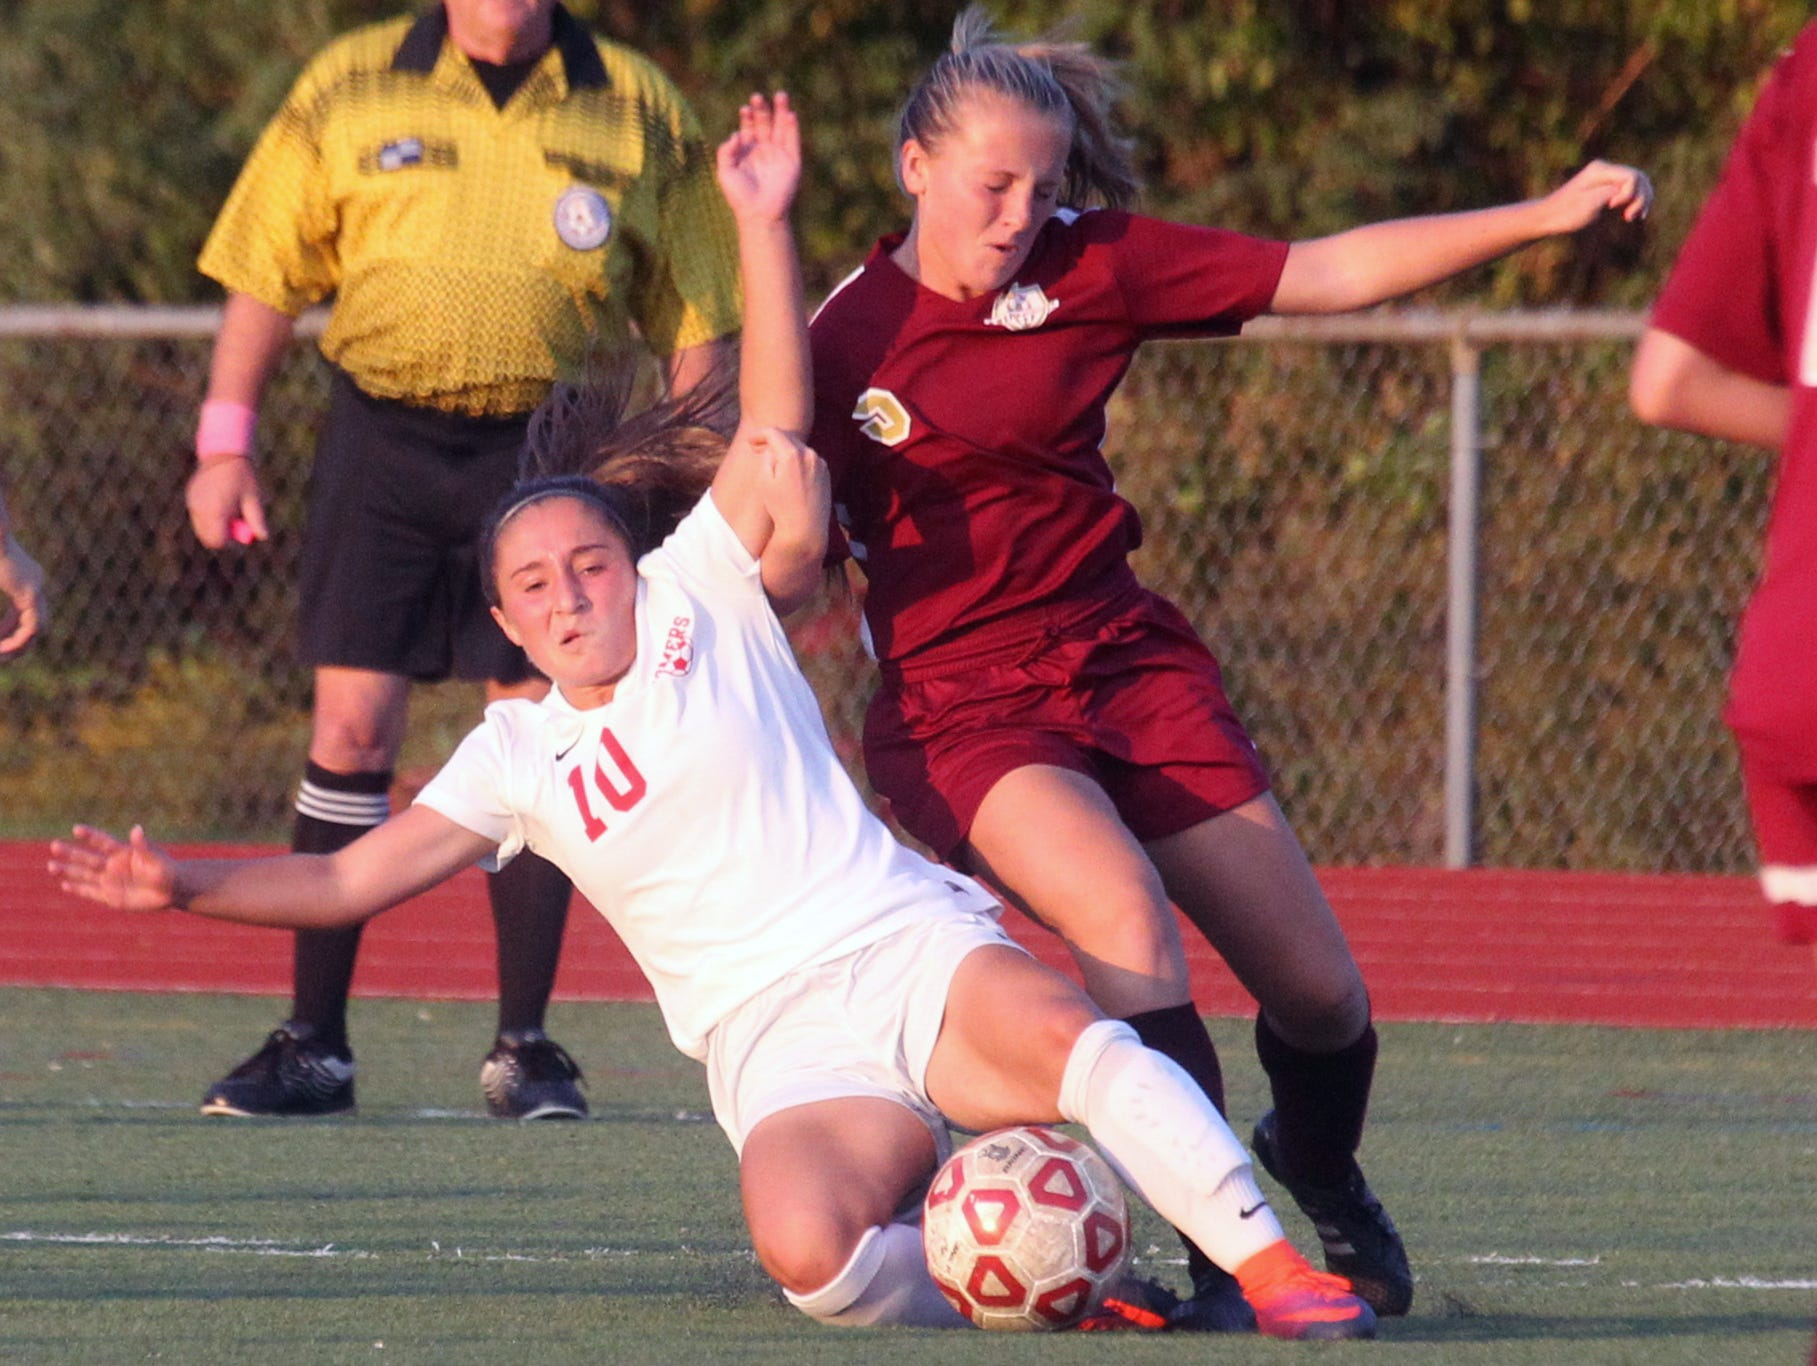 Somers' Jessica Rodriguez, left, is pressured by Arlington's Kendall Feighan during their game at Somers Oct. 17, 2016. Arlington won 2-1 in overtime.